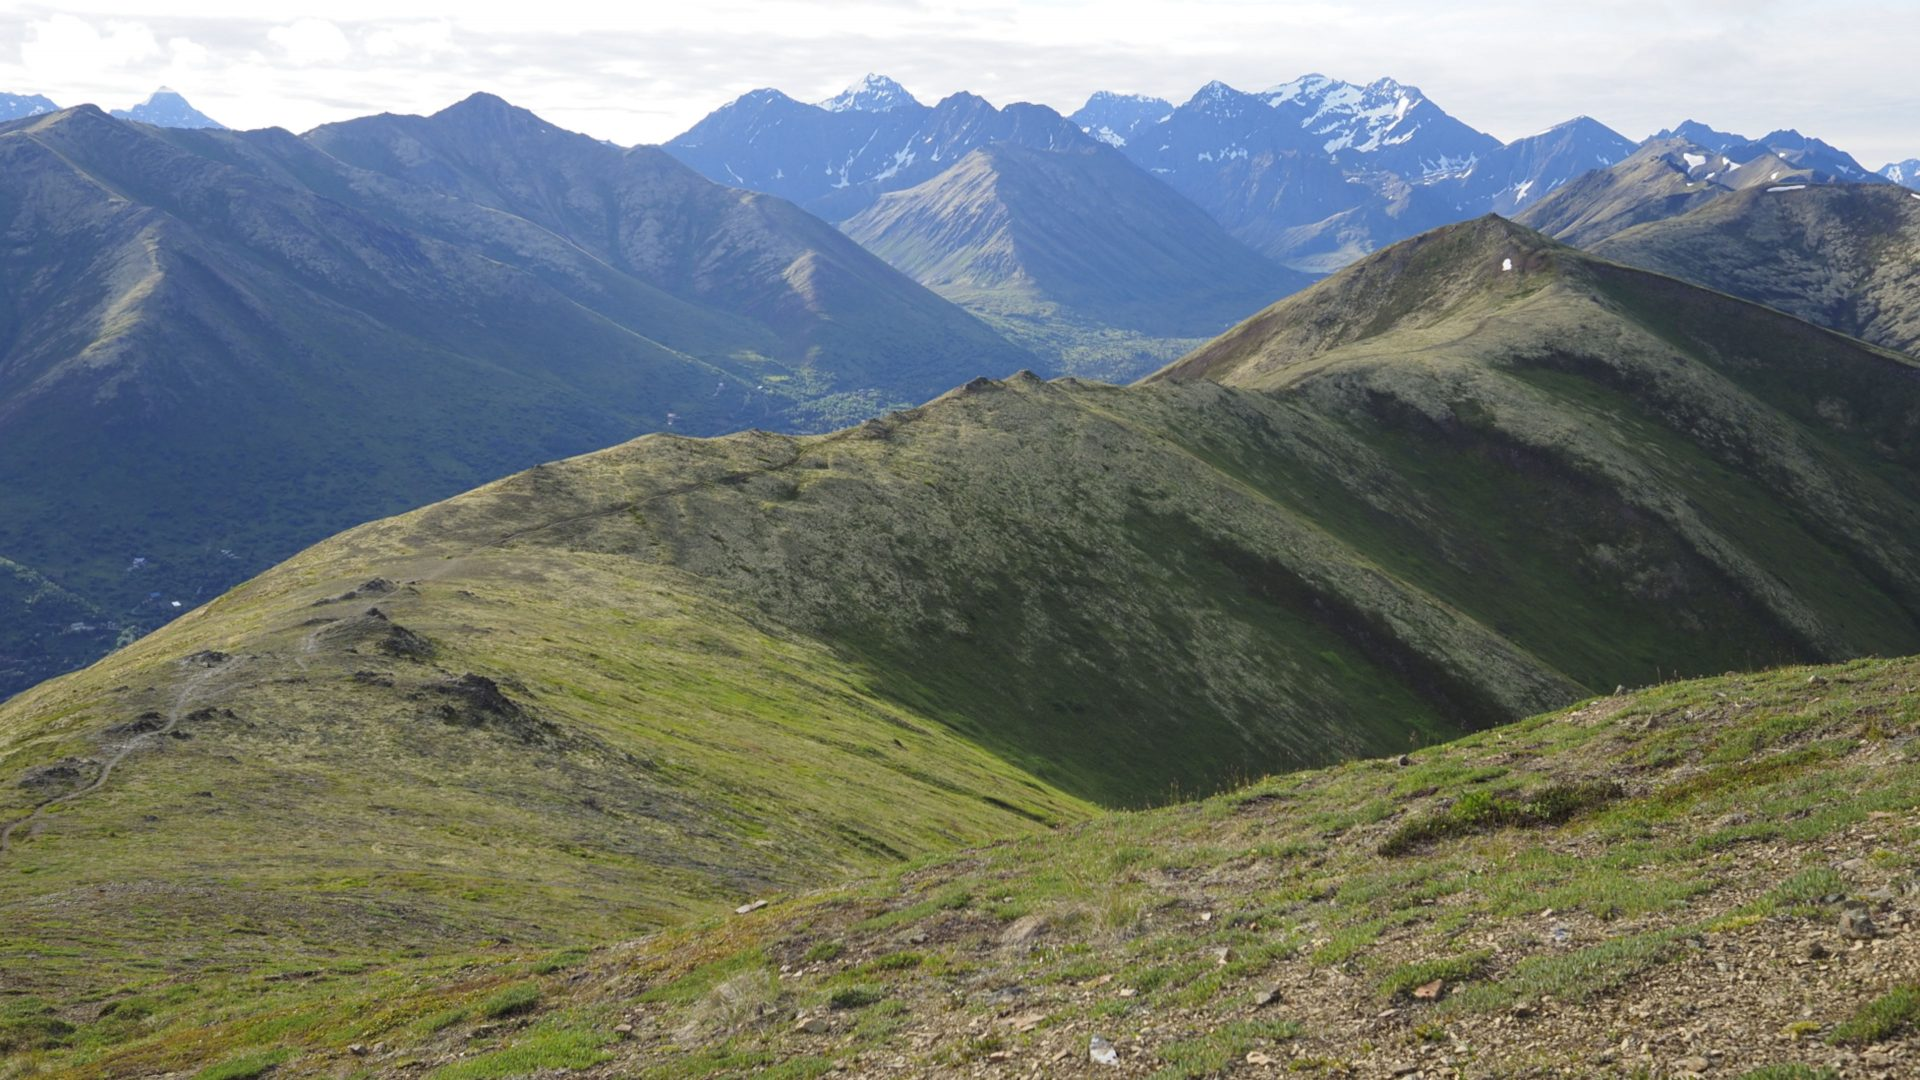 View of the Chugach Mountains